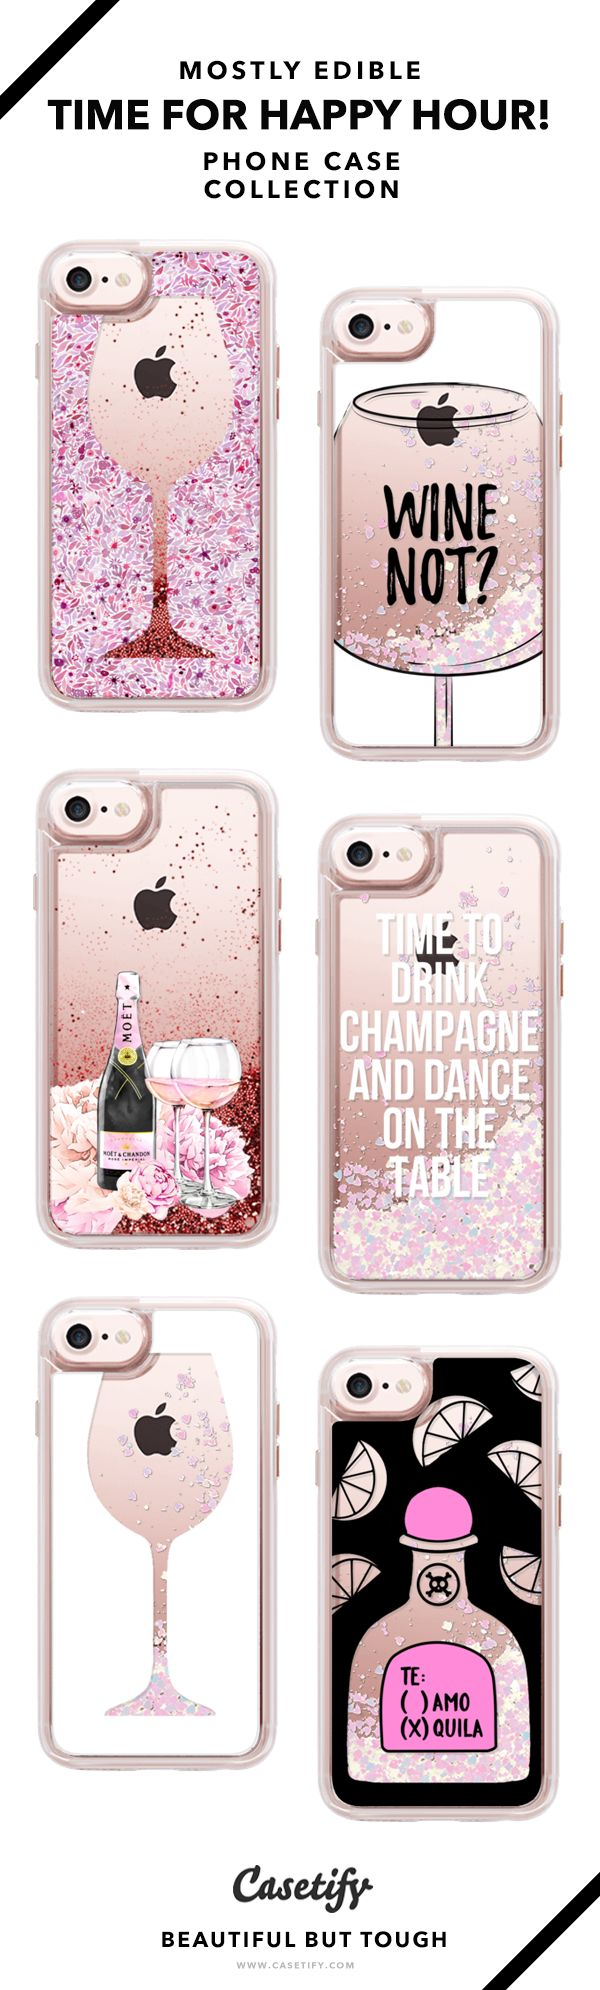 Why Limited Happy To An Happy Hour?! | So glittery & shiny phone case collection - iPhone 6/6s/7/7+ AND MORE! Shop them here ☝️☝️☝️ BEAUTIFUL BUT TOUGH ✨ - Champagne, Wine, Drinks, Shiny, Glittery, Glam, Girl's Night, Night Life